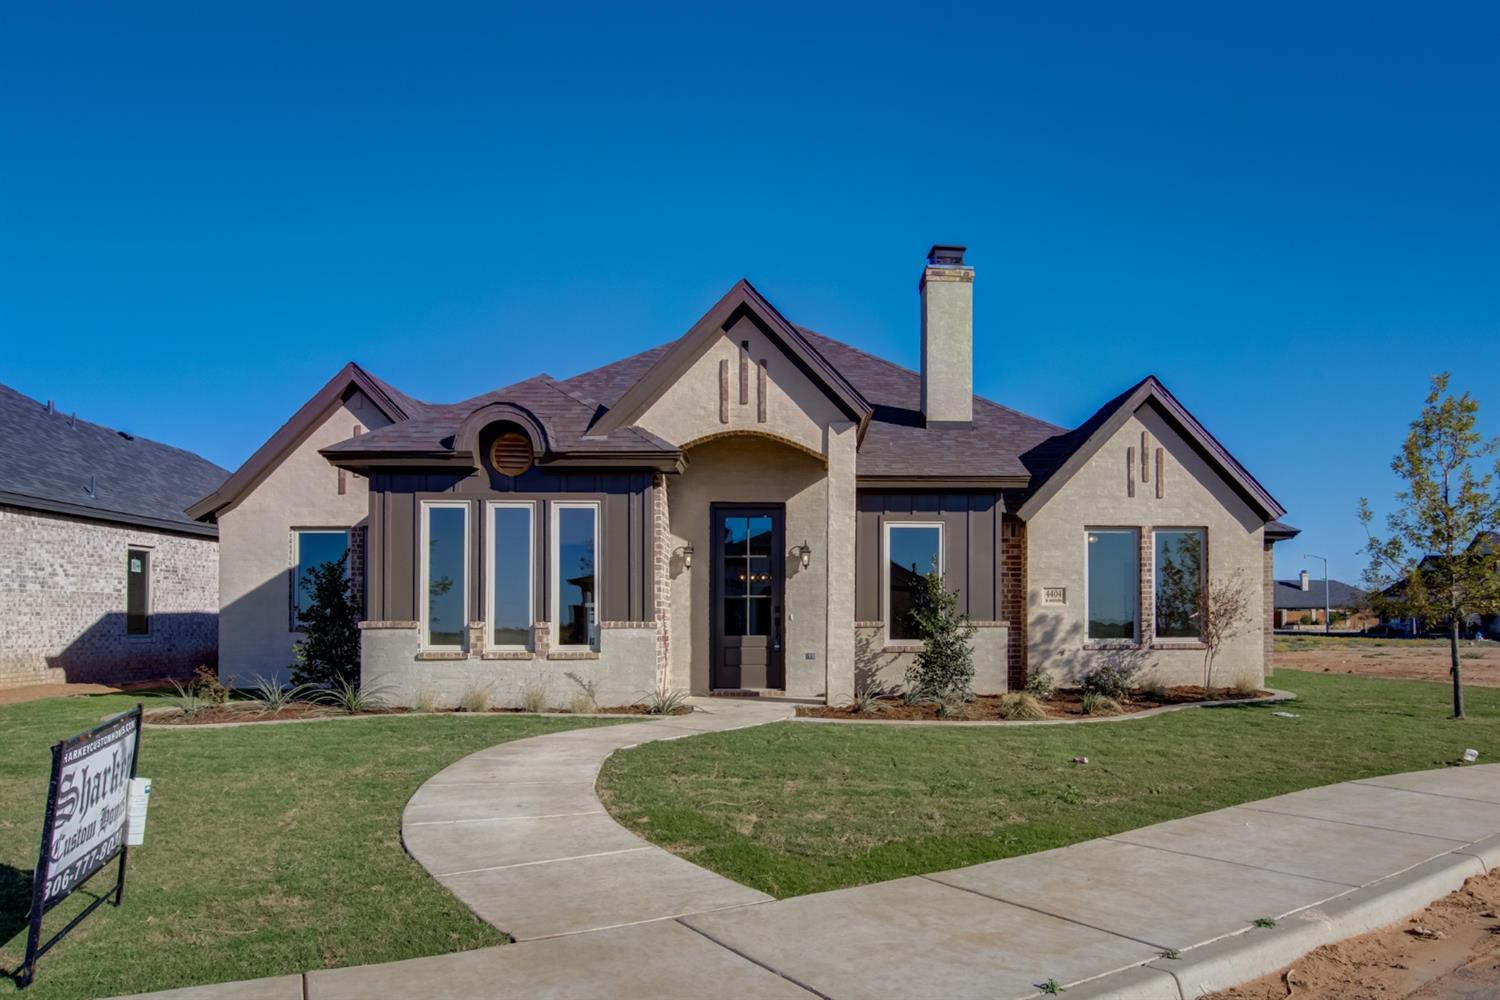 This beautiful Sharkey Custom Homes, Inc. is uniquely designed by Madisson Sharkey.  Her debut property is magnificent! You will love the attention to detail on the exterior of the house. With the combination of brick, wood and smear, it has a unique look all it's own.  As you walk in, you immediately notice the beautiful ceilings, tiled fireplace and gorgeous chef-inspired kitchen! This house has a versatile extra room that can be used as an office or play room. And the laundry room has an area that can be used as a desk or craft area! This is a MUST see!  Call me today for a personal tour!